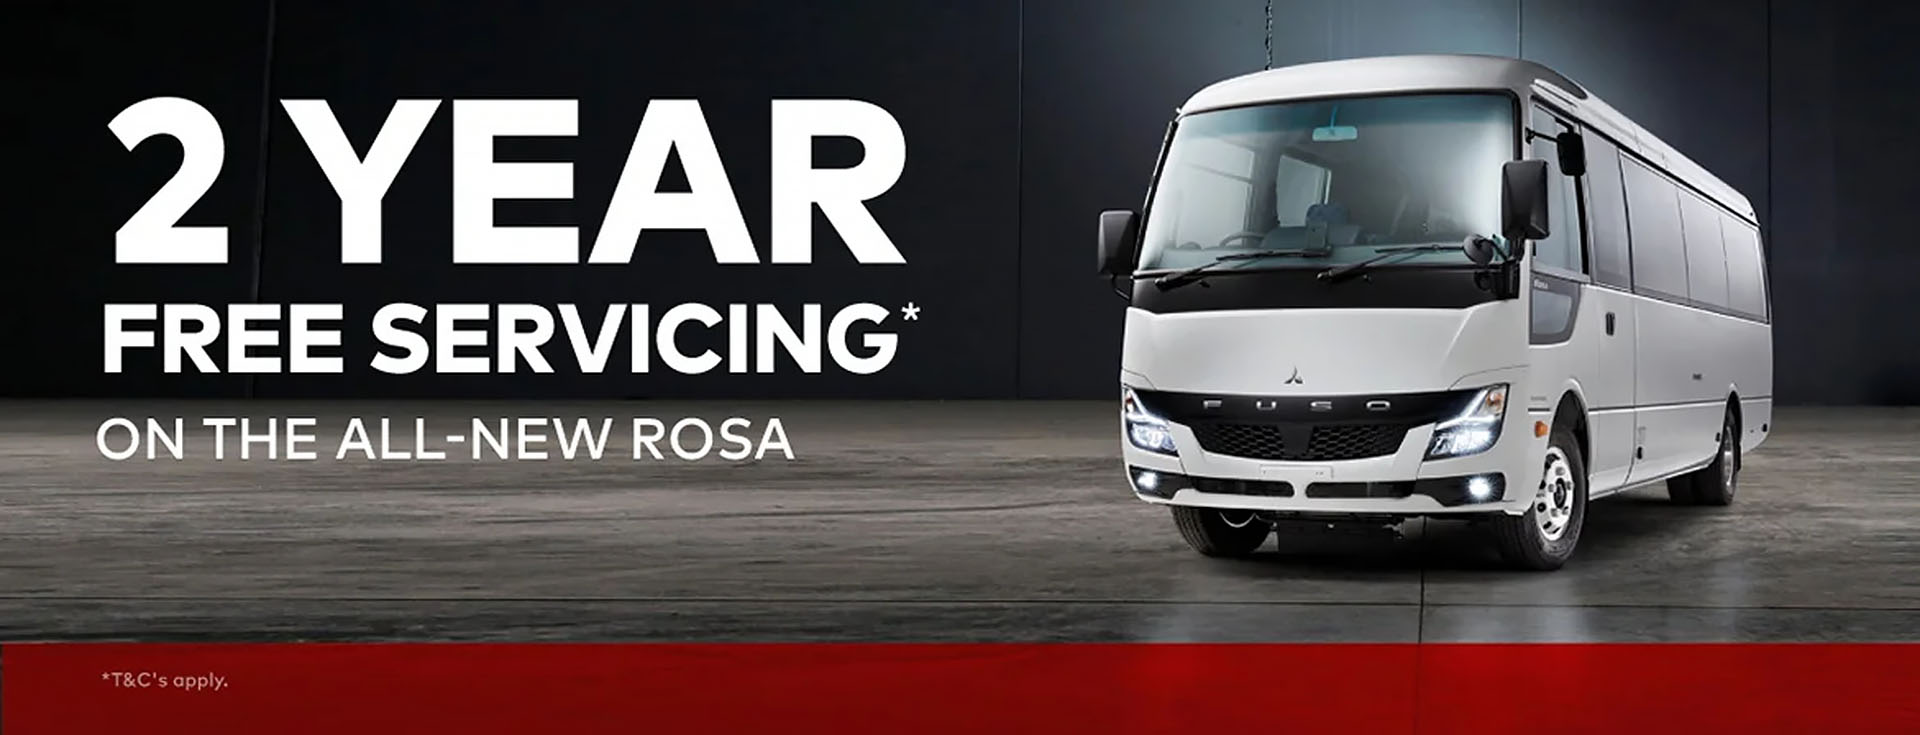 2 YEARS FREE SERVICING* ON THE ALL NEW ROSA